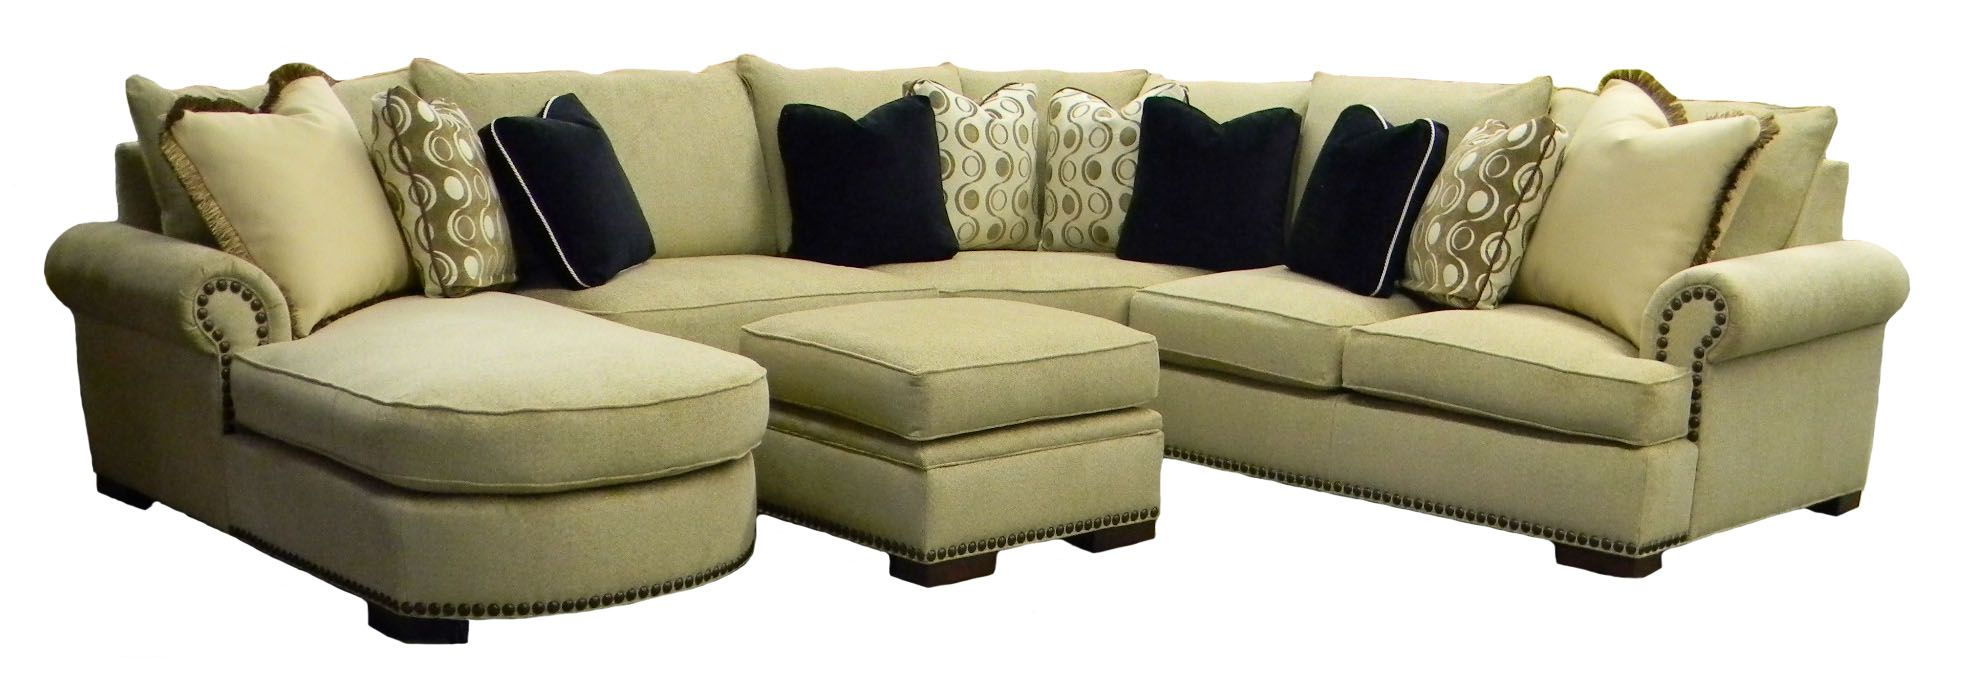 Ben and Rosa Build your own couch, Sectional, Couches